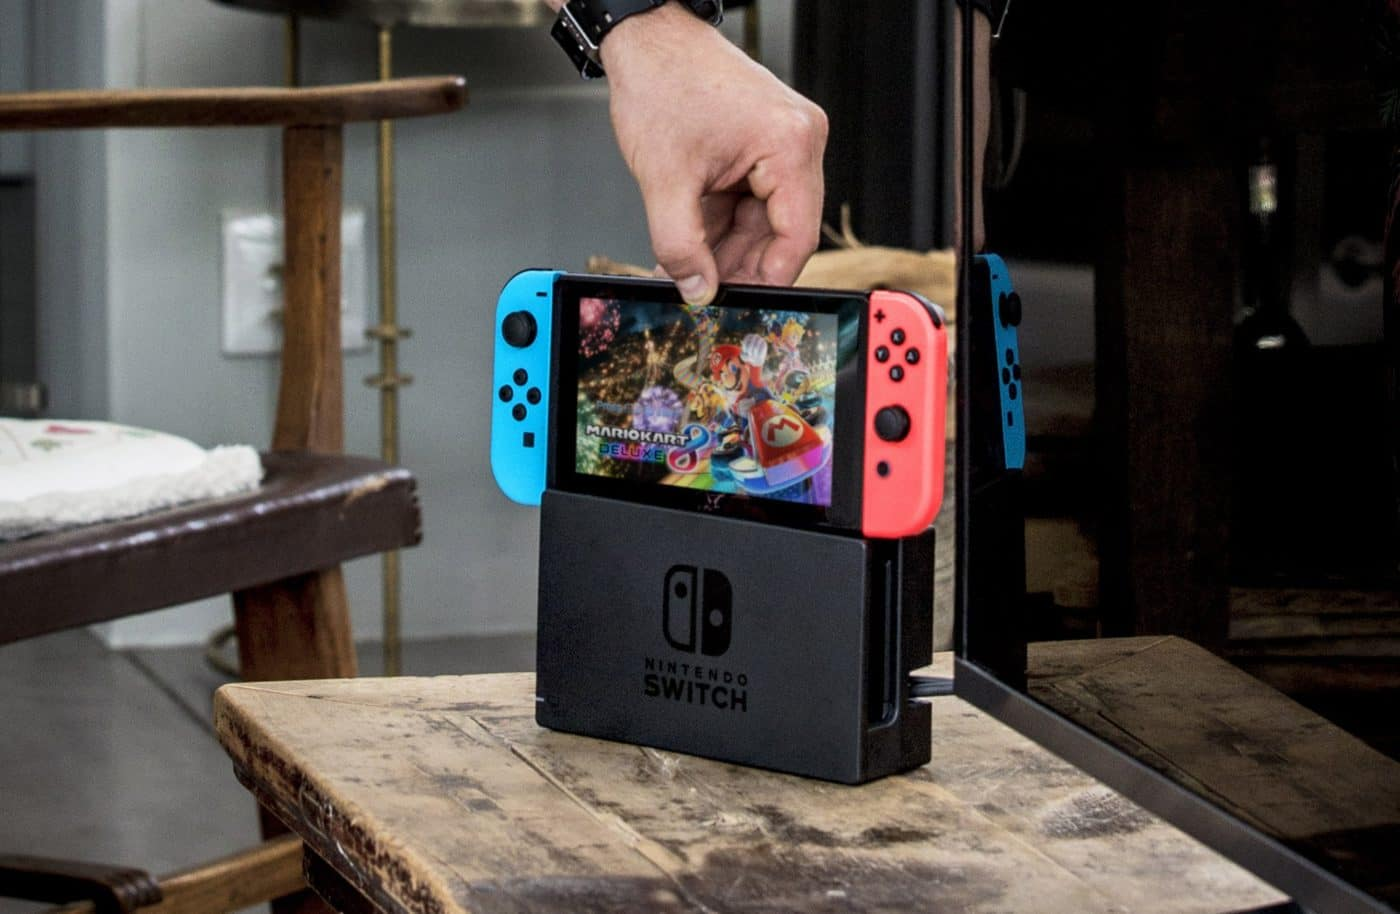 Zelda and Nintendo's Switch Set Records In March 2017, Switch Becomes Nintendo's Fastest Selling Console In The US 1